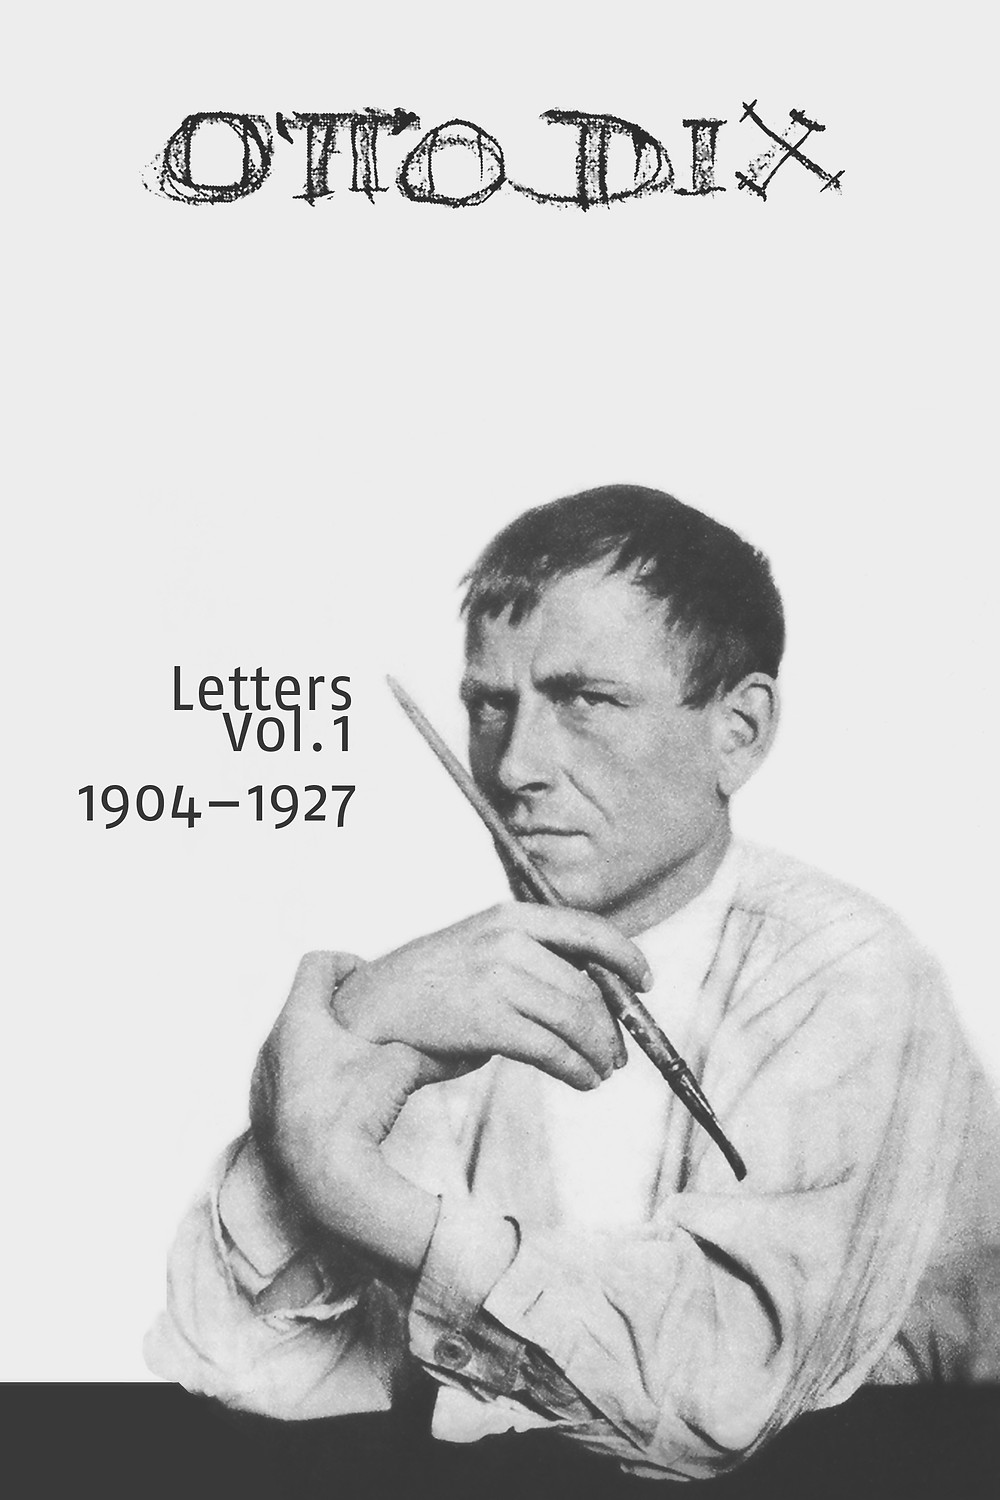 Otto Dix was an expressionist and letter writer.